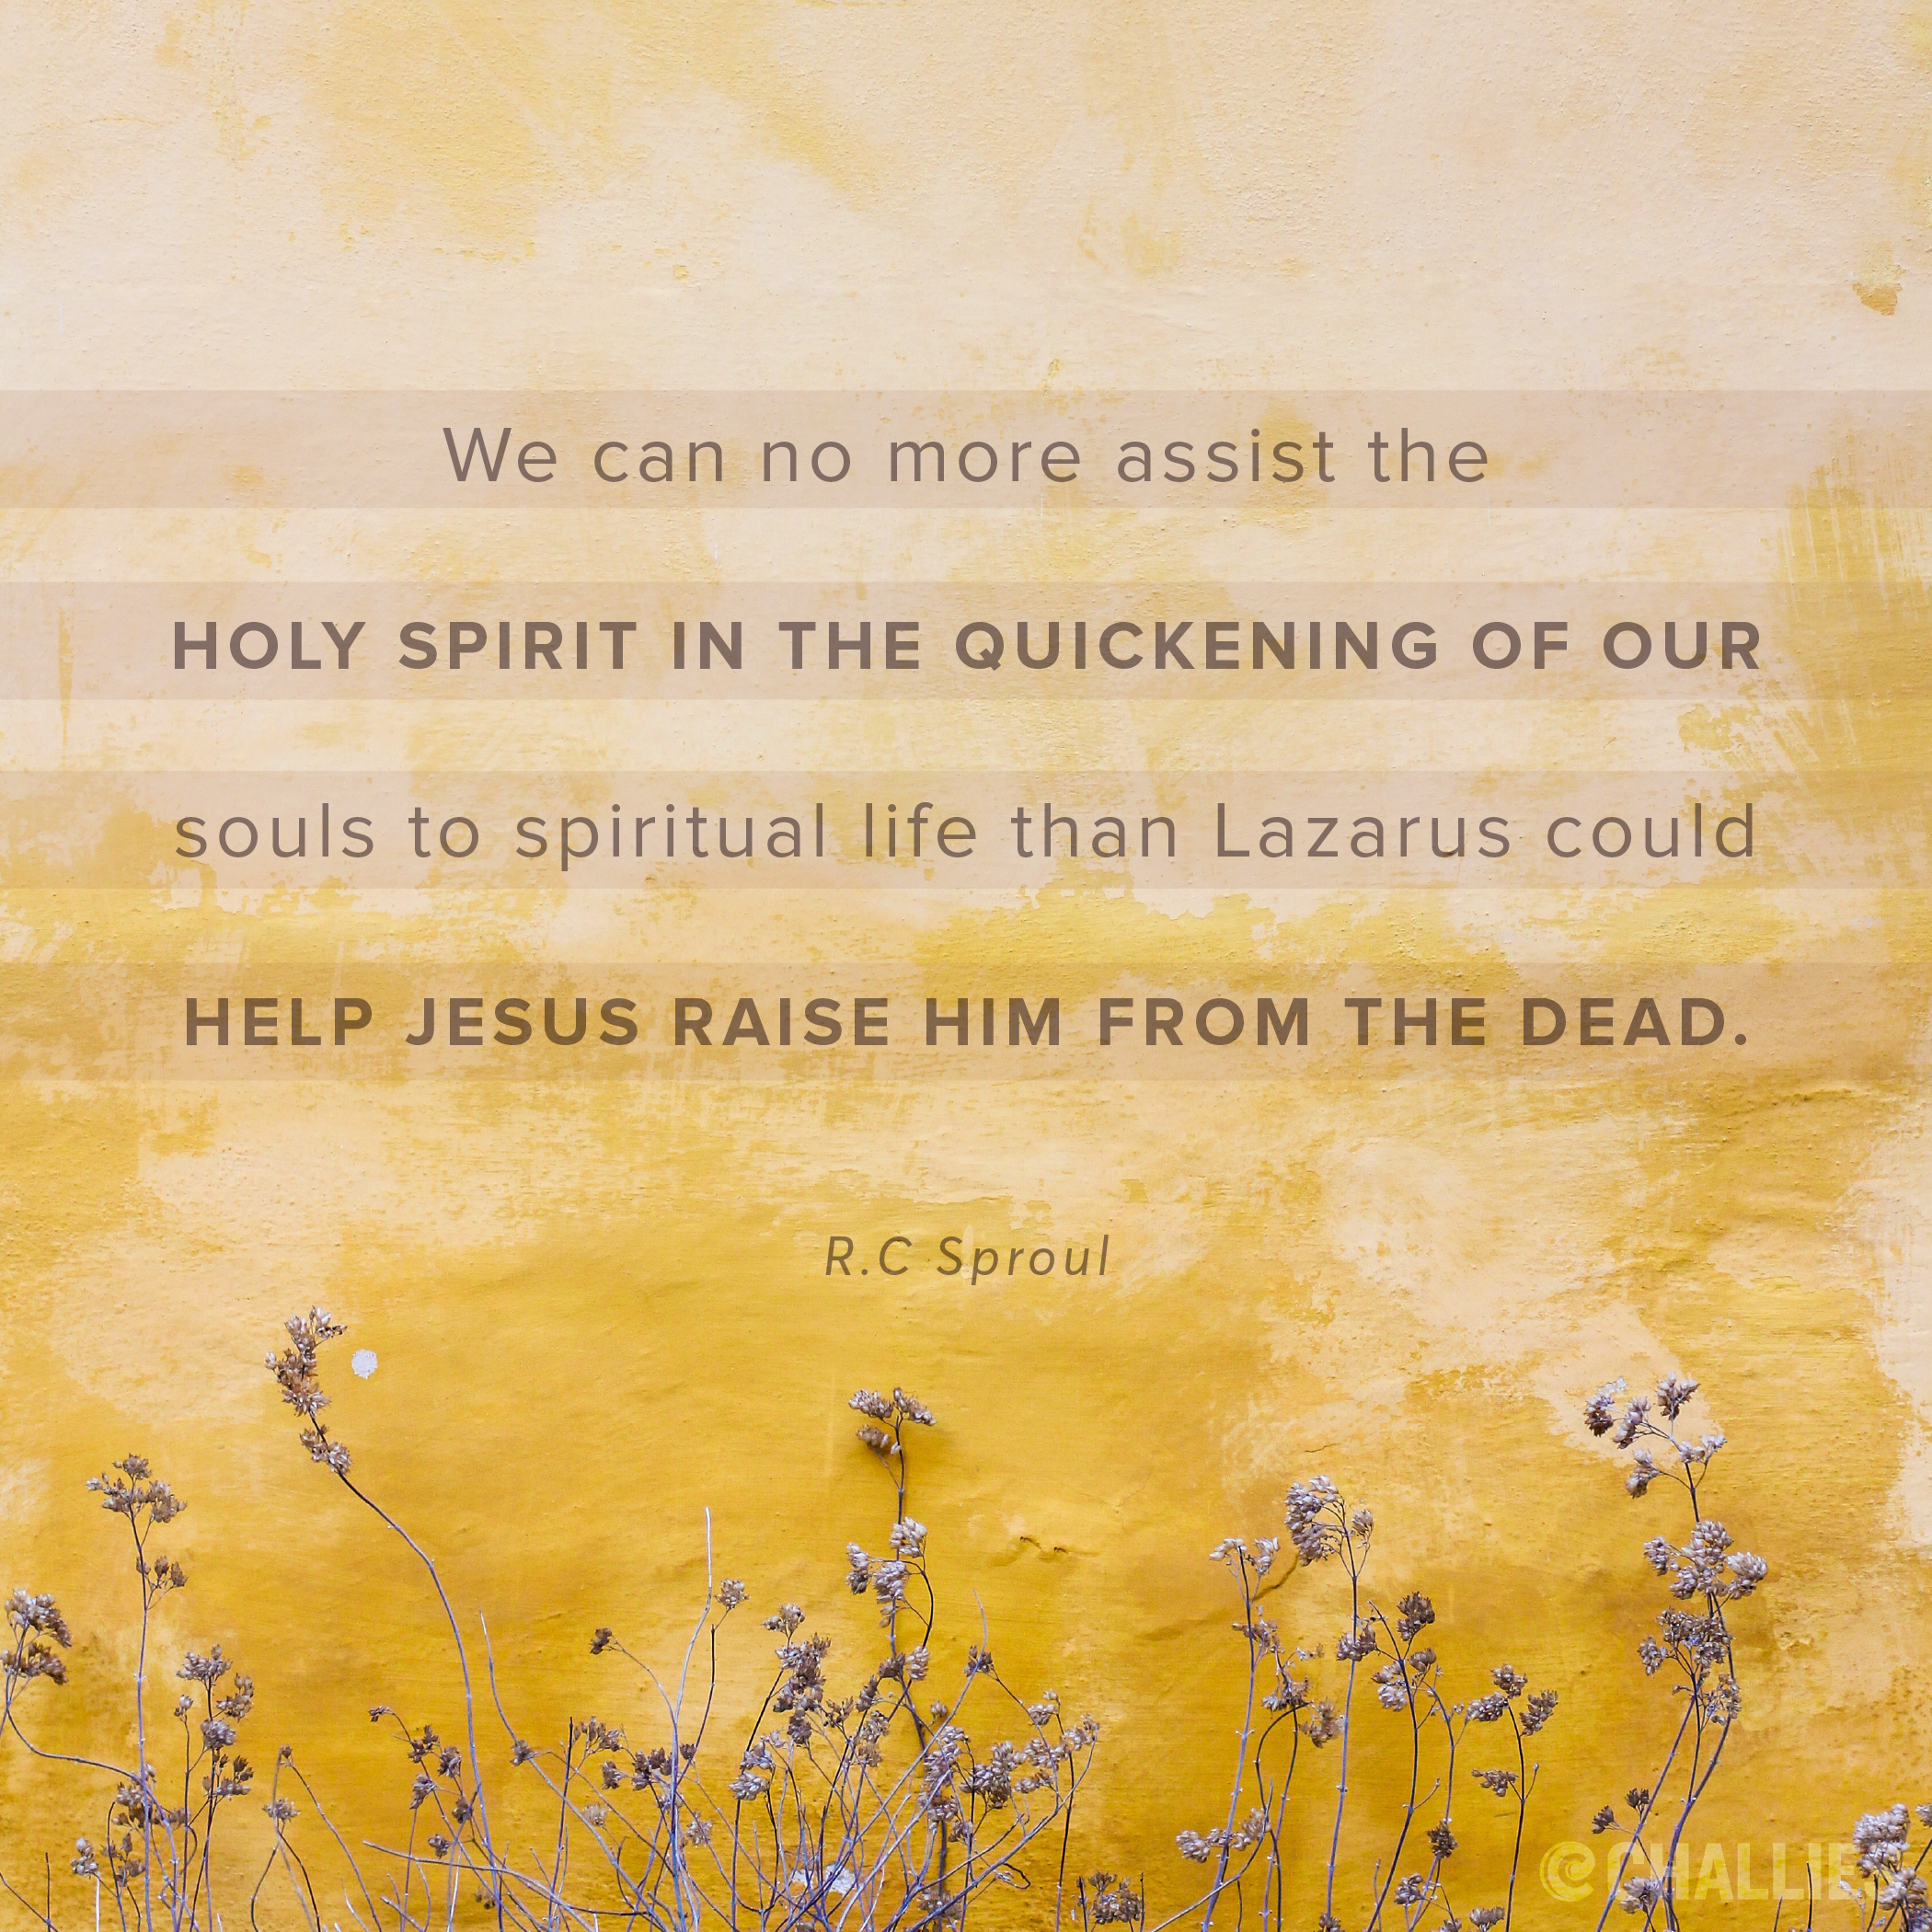 Spiritual Life Quotes We Can No More Assist The Holy Spirit In The Quickening Of Our